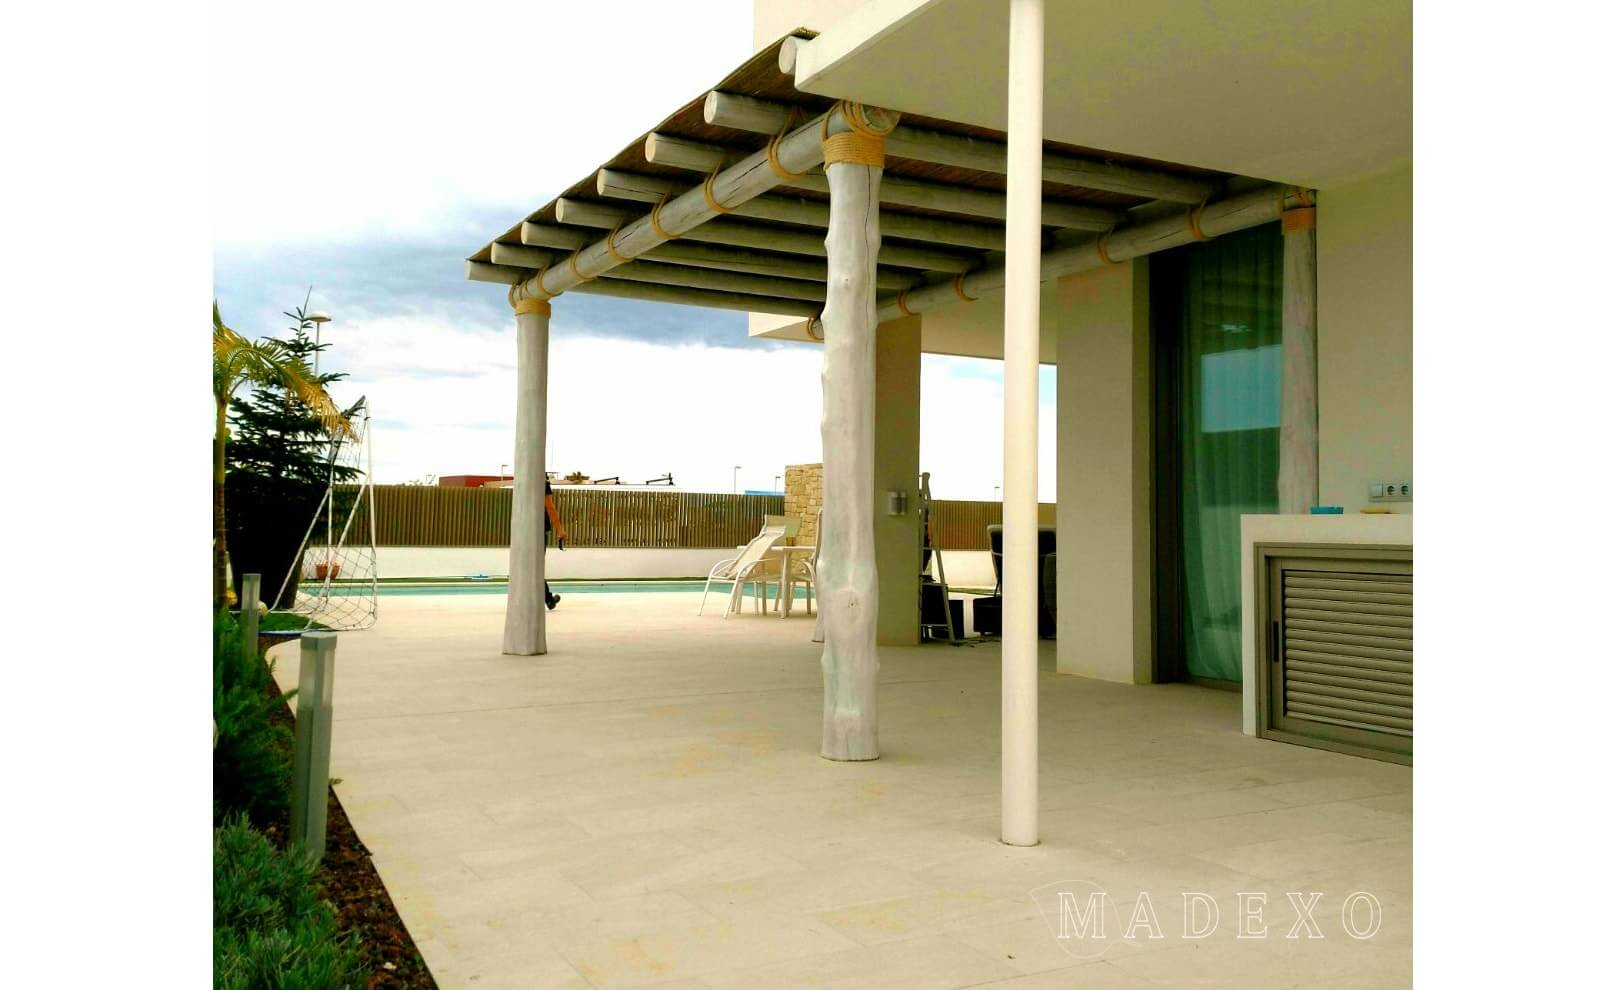 Madexo-Porches-web-7